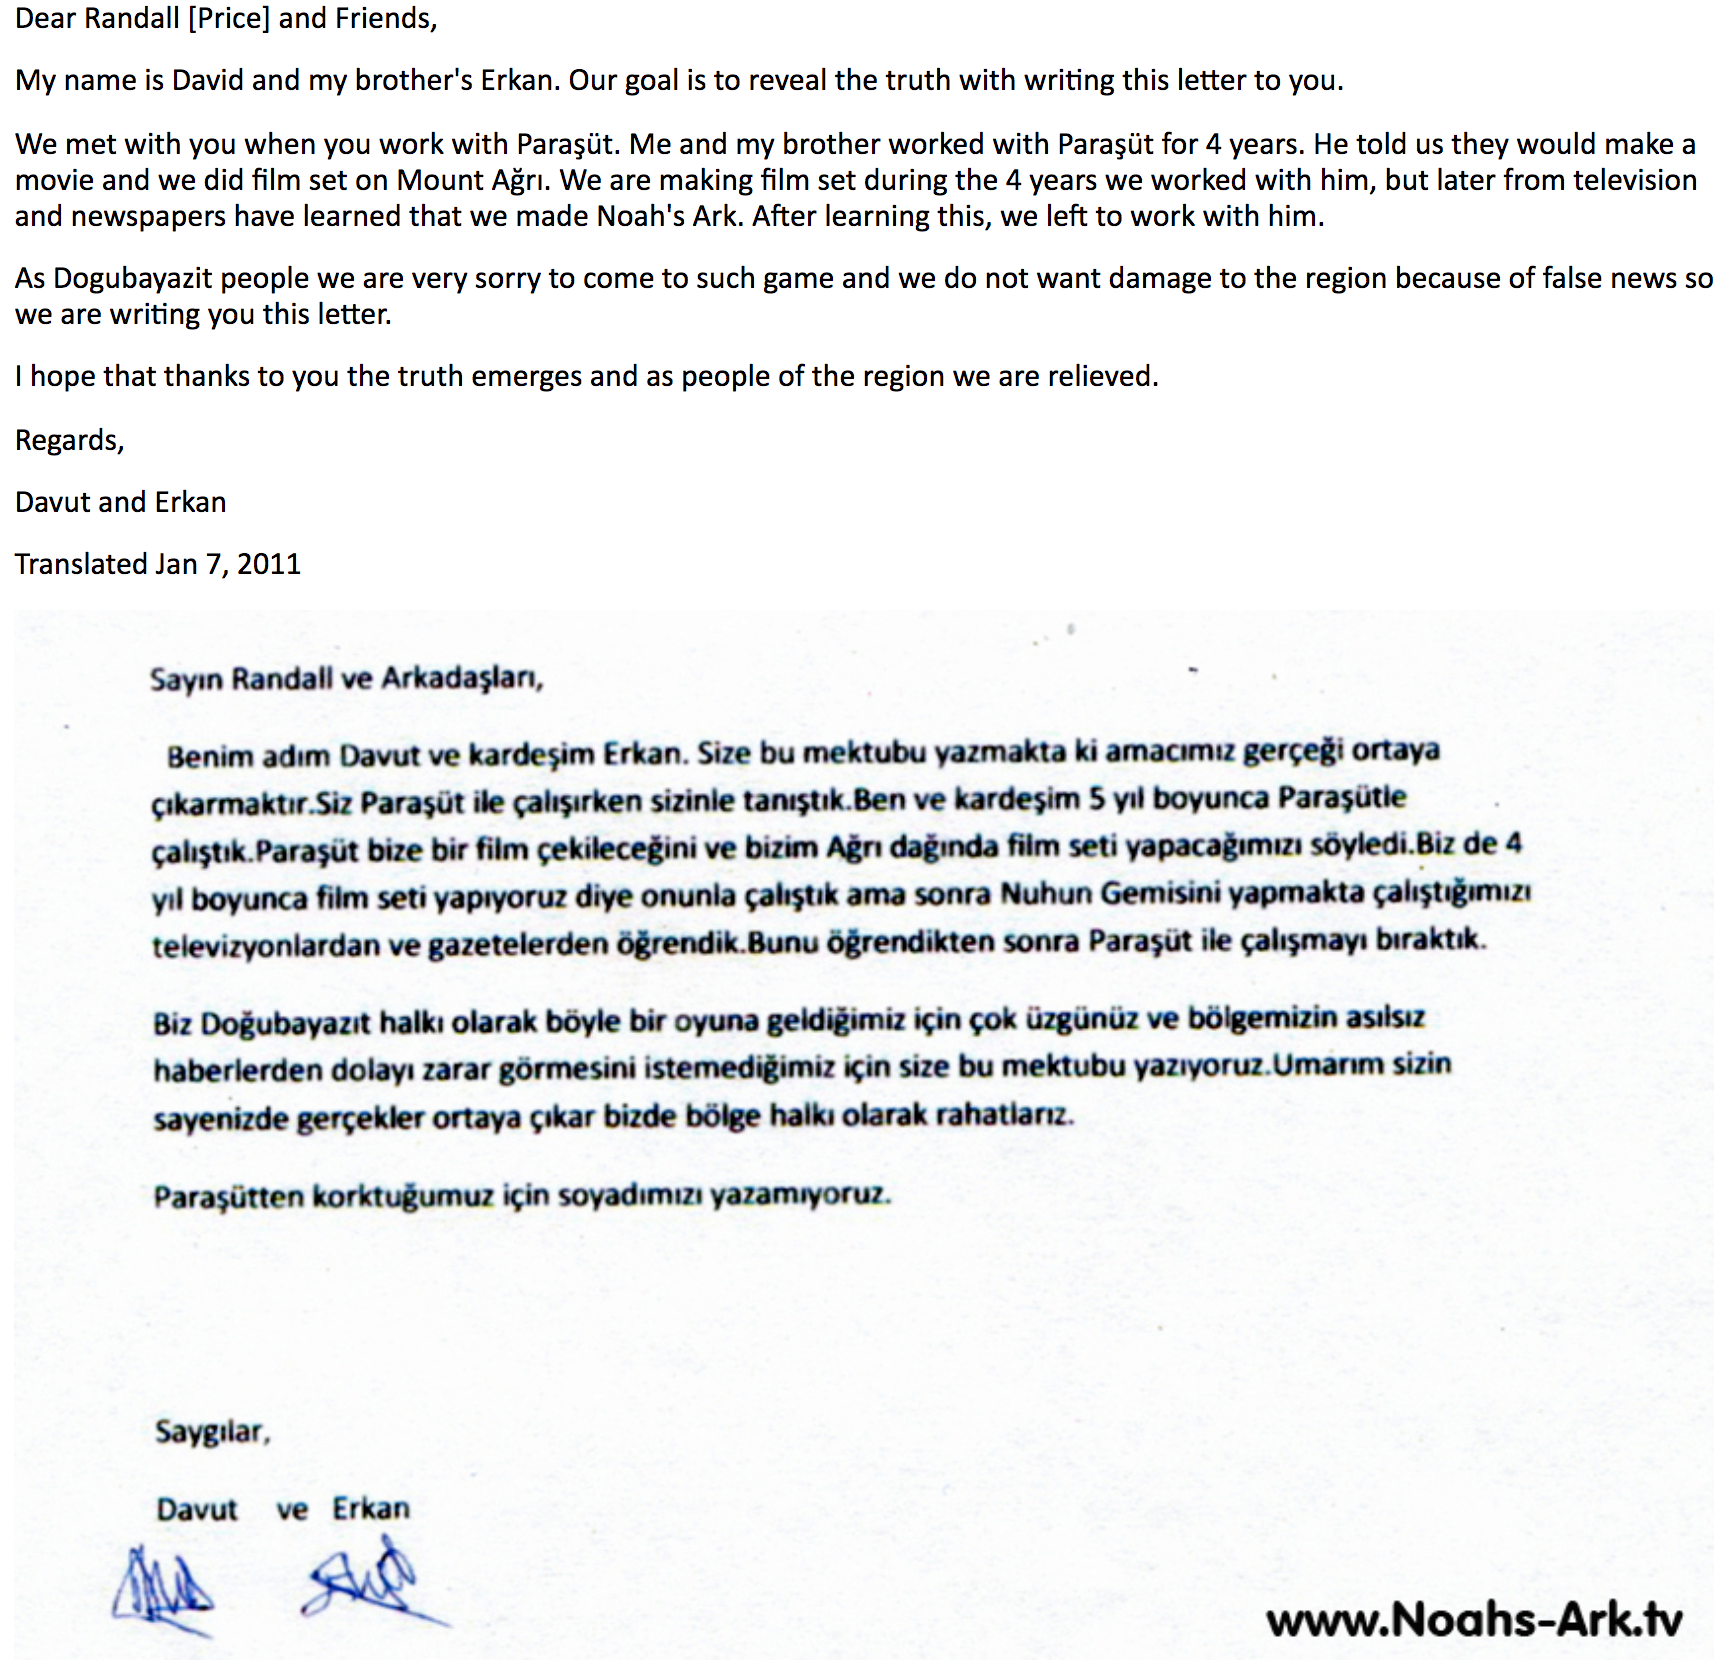 Apology letter from those who unwittingly build the fraudulent NAMI ark site